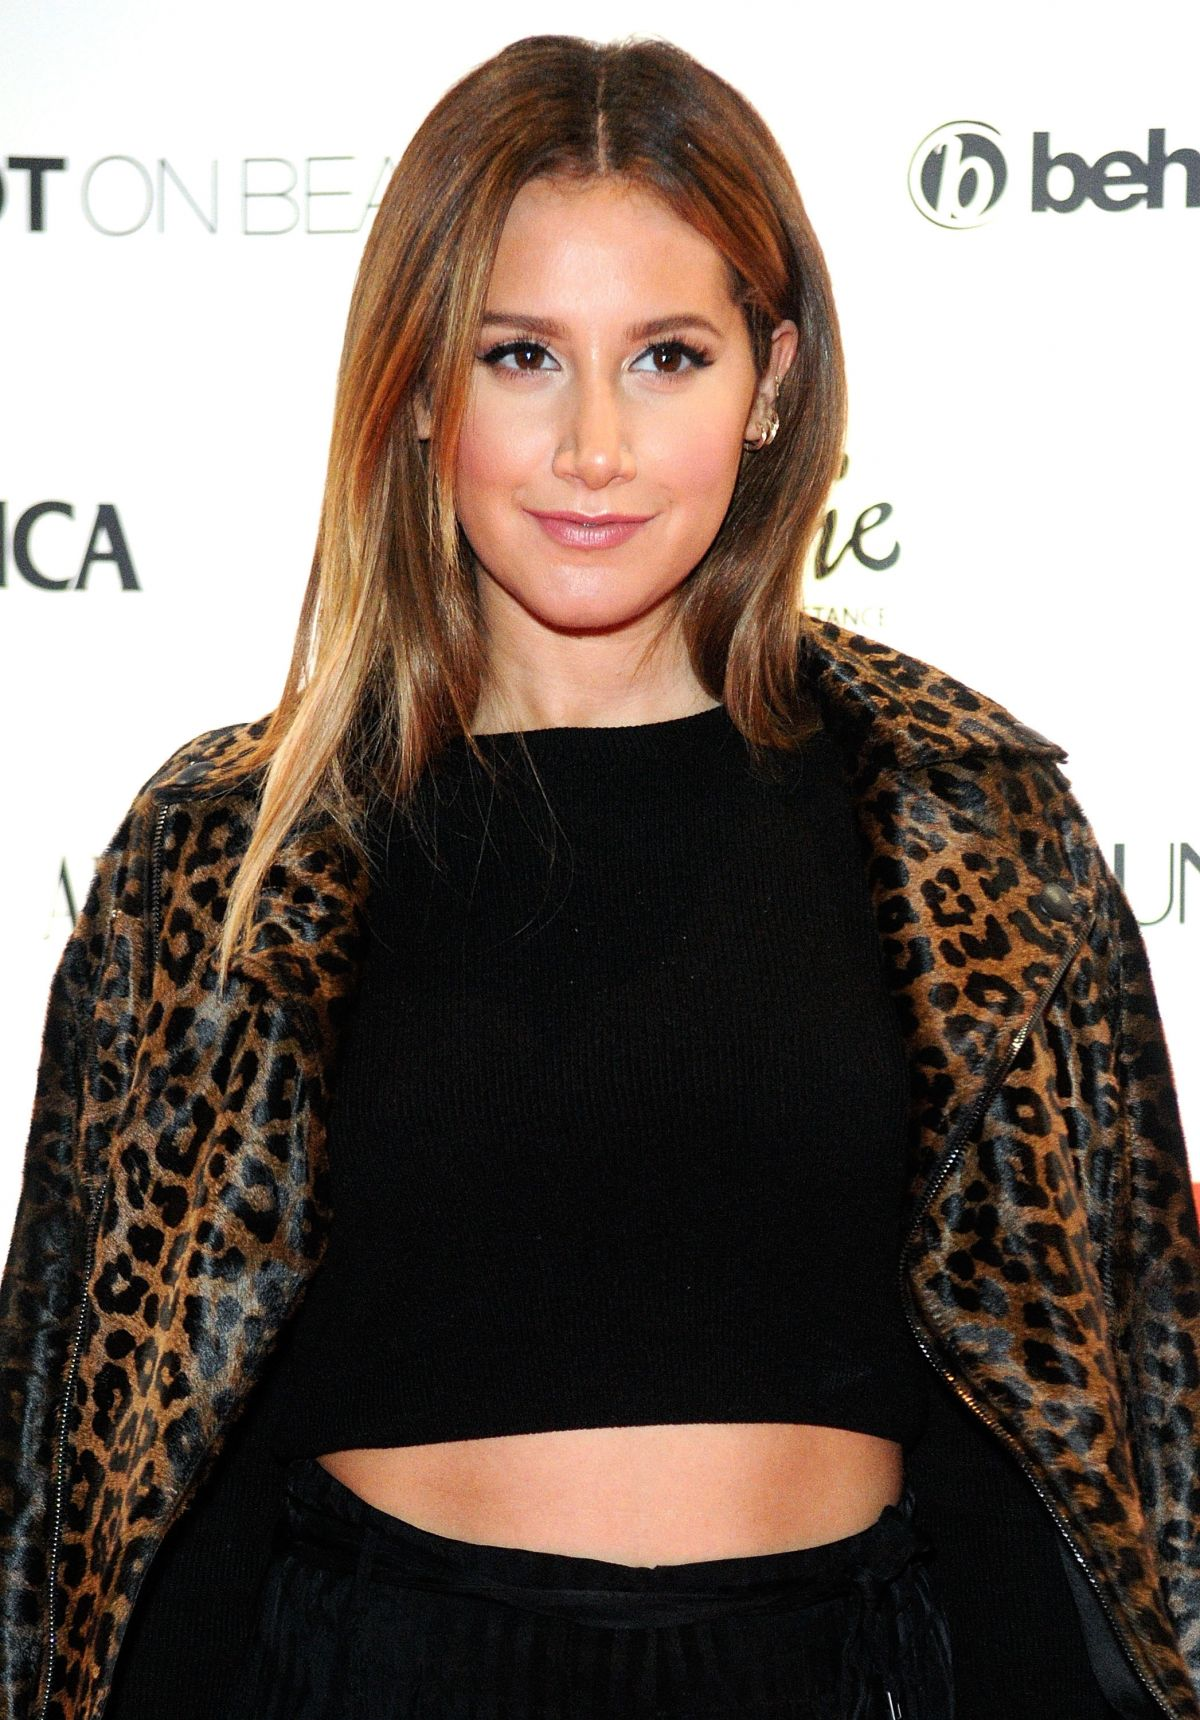 ASHLEY TISDALE at Matrix Total Results Reinvention in Orlando 01/23 ...